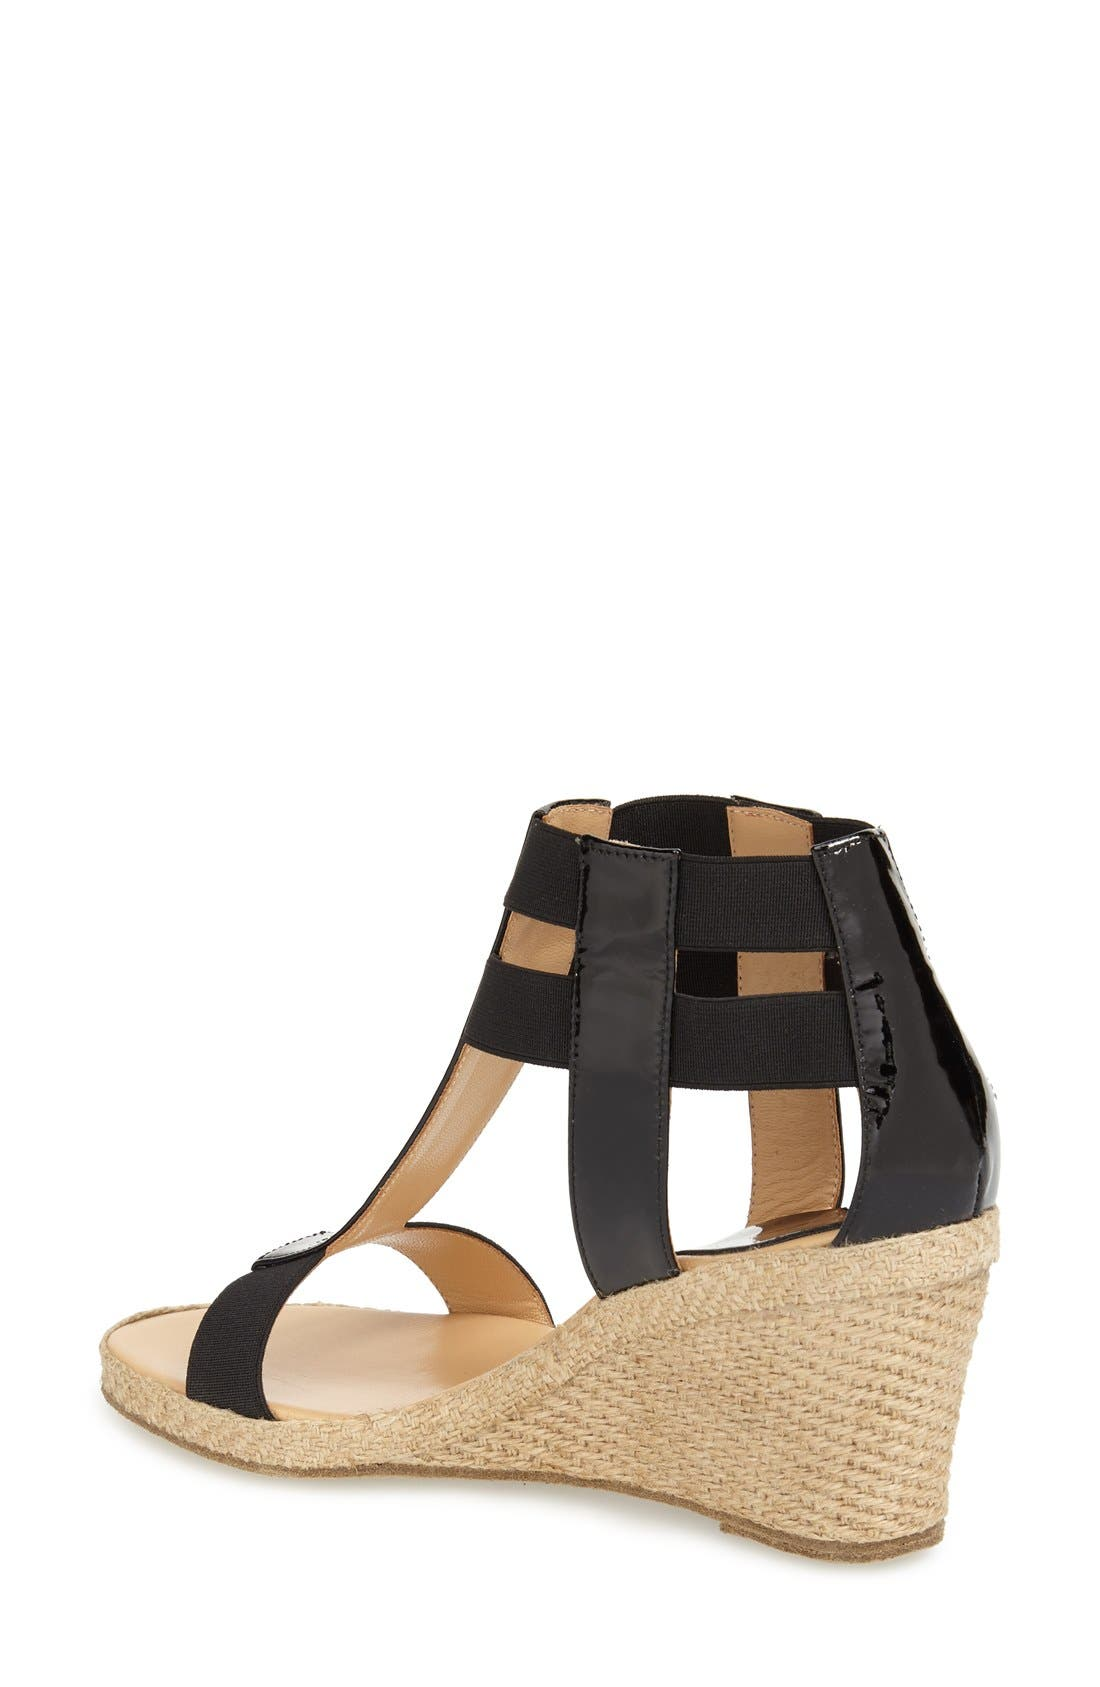 Alternate Image 2  - André Assous 'Pippi' Espadrille Wedge Sandal (Women)